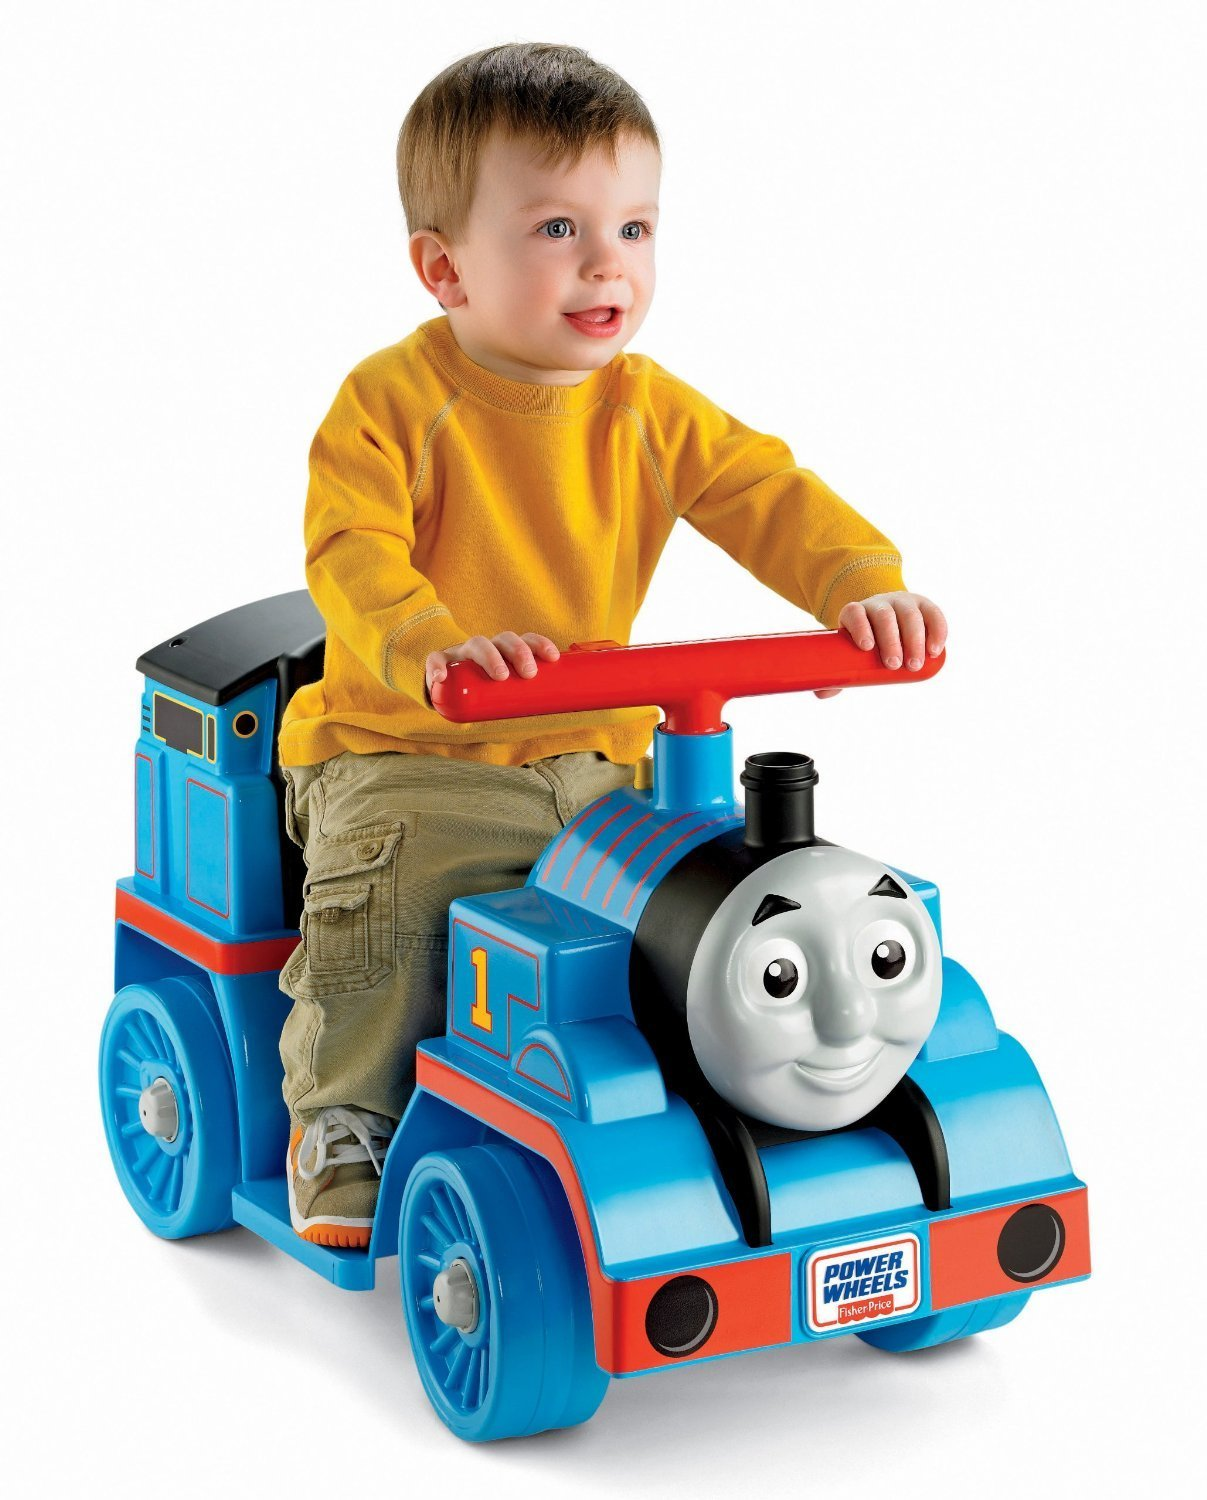 Thomas Power Wheels The Train Engine Vehicle 83 89 Wheel N Toys For 1 Month Old Baby